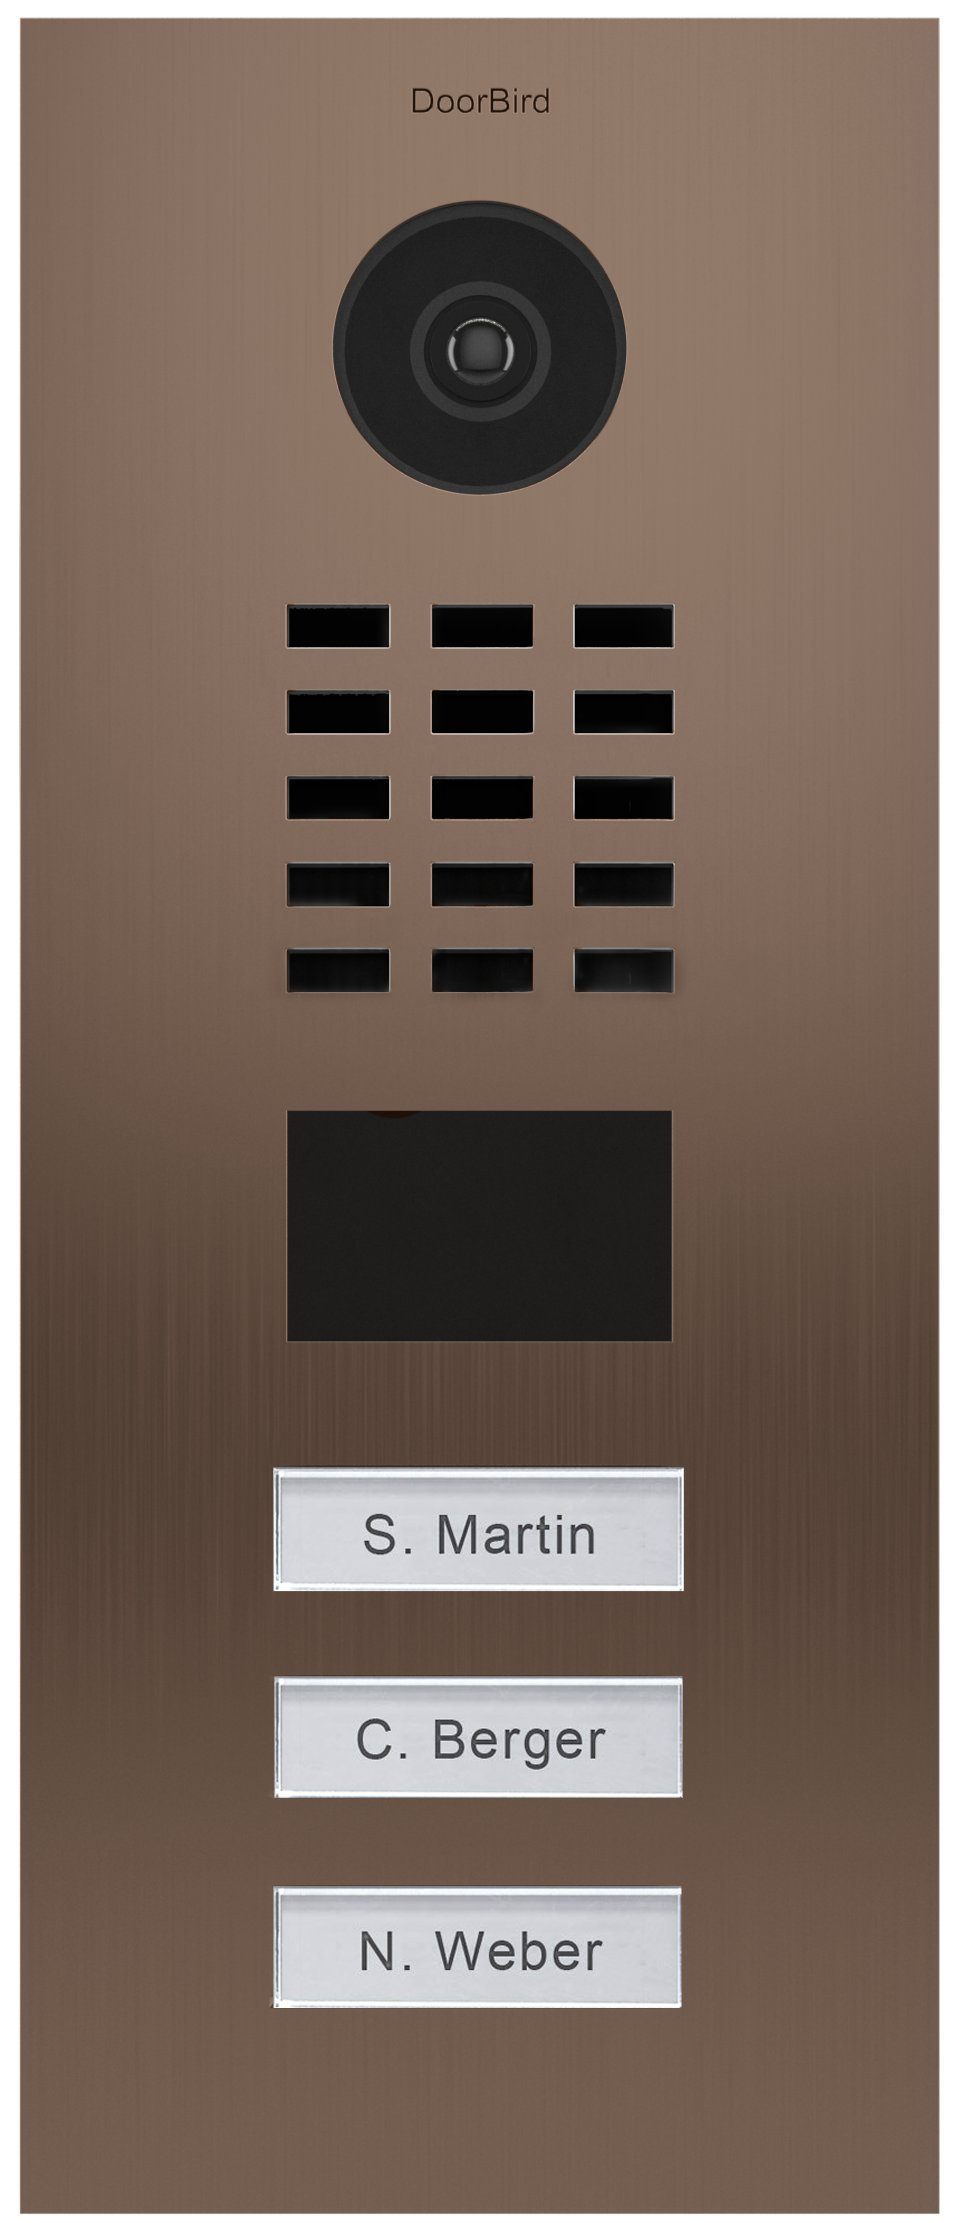 DoorBird IP Video Door Station Flush-mounted, Brushed Stainless Steel Call buttons Multi Tenants - Access Control- POE Capable (Bronze Stainless Steel / 3 Call Buttons)